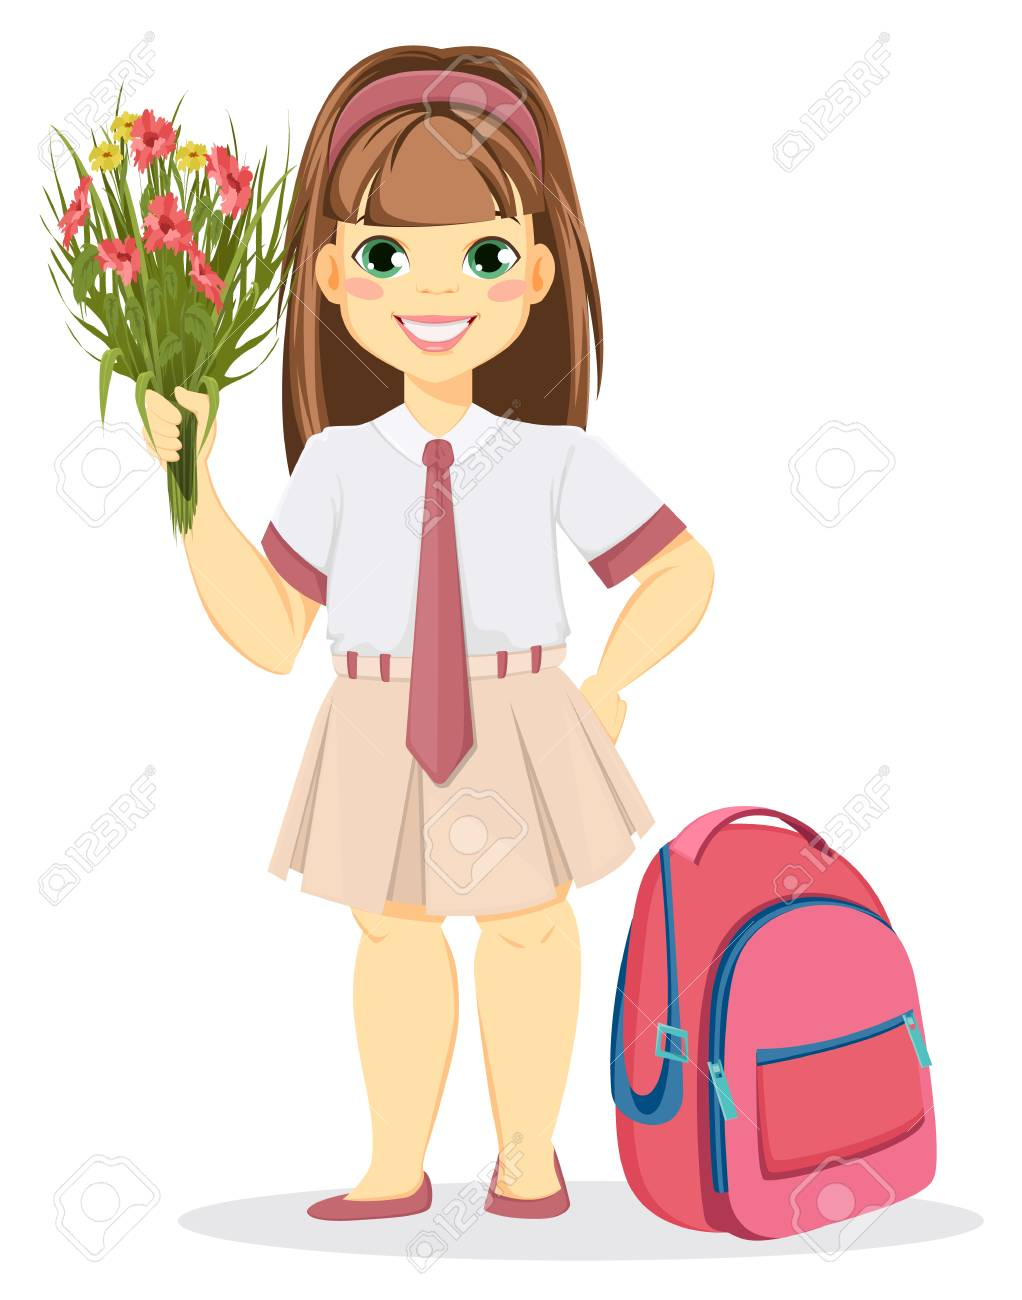 Cartoon character. Vector illustration. Schoolgirl with backpack and  bouquet of flowers. Coming back to school. Cute smiling girl e9880e86735b3